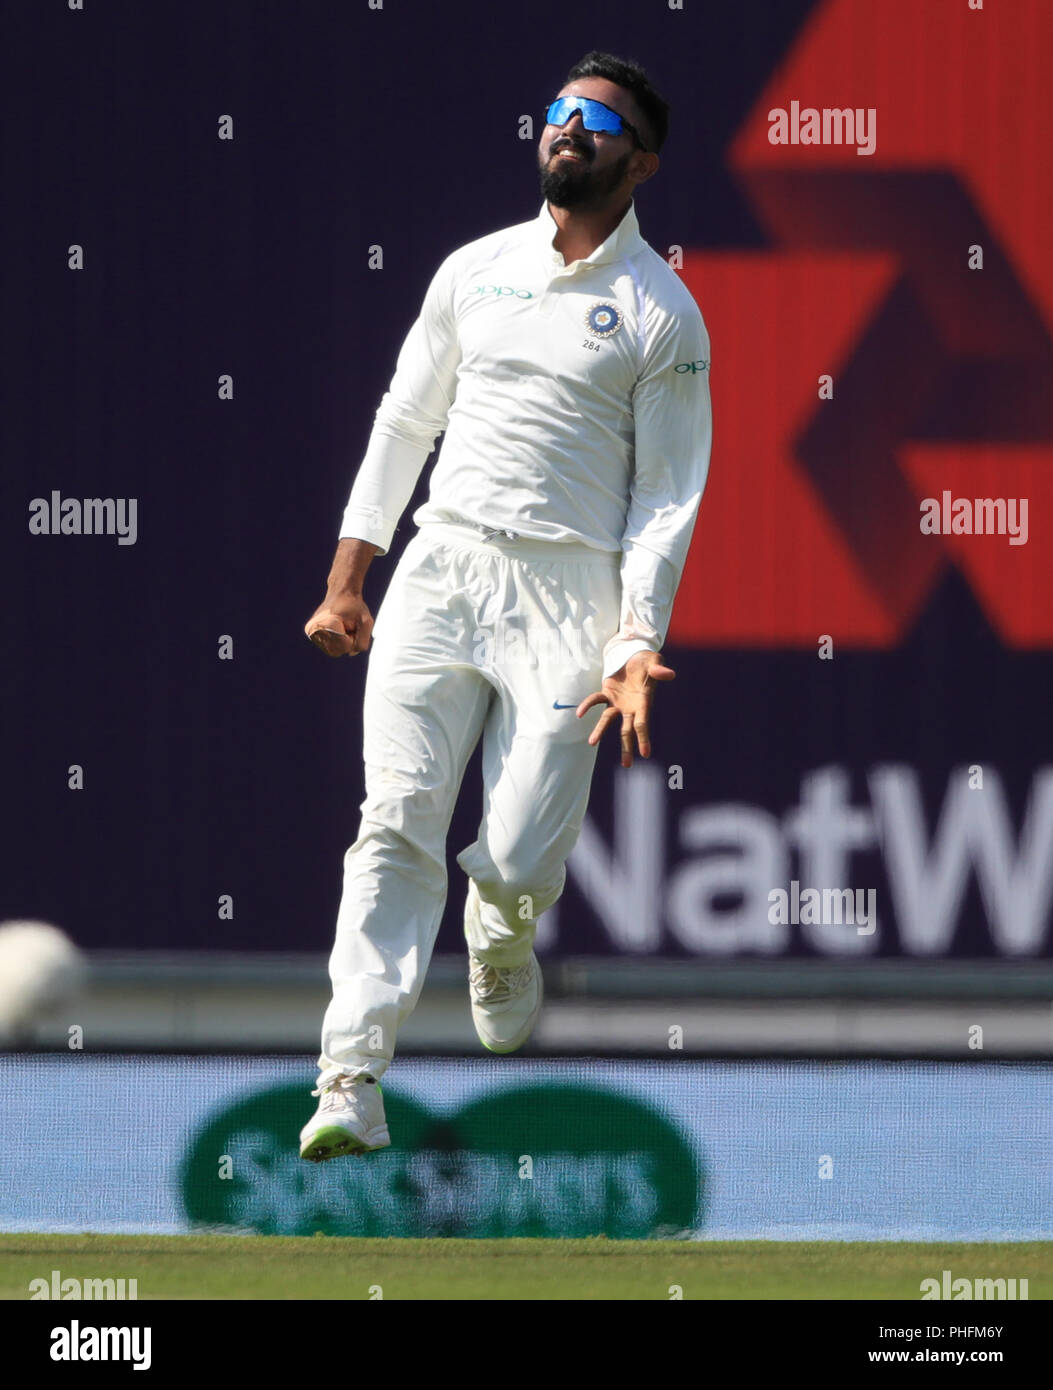 India's KL Rahul celebrates catching the ball of England's Alastair Cook during day three of the fourth test at the AGEAS Bowl, Southampton. - Stock Image